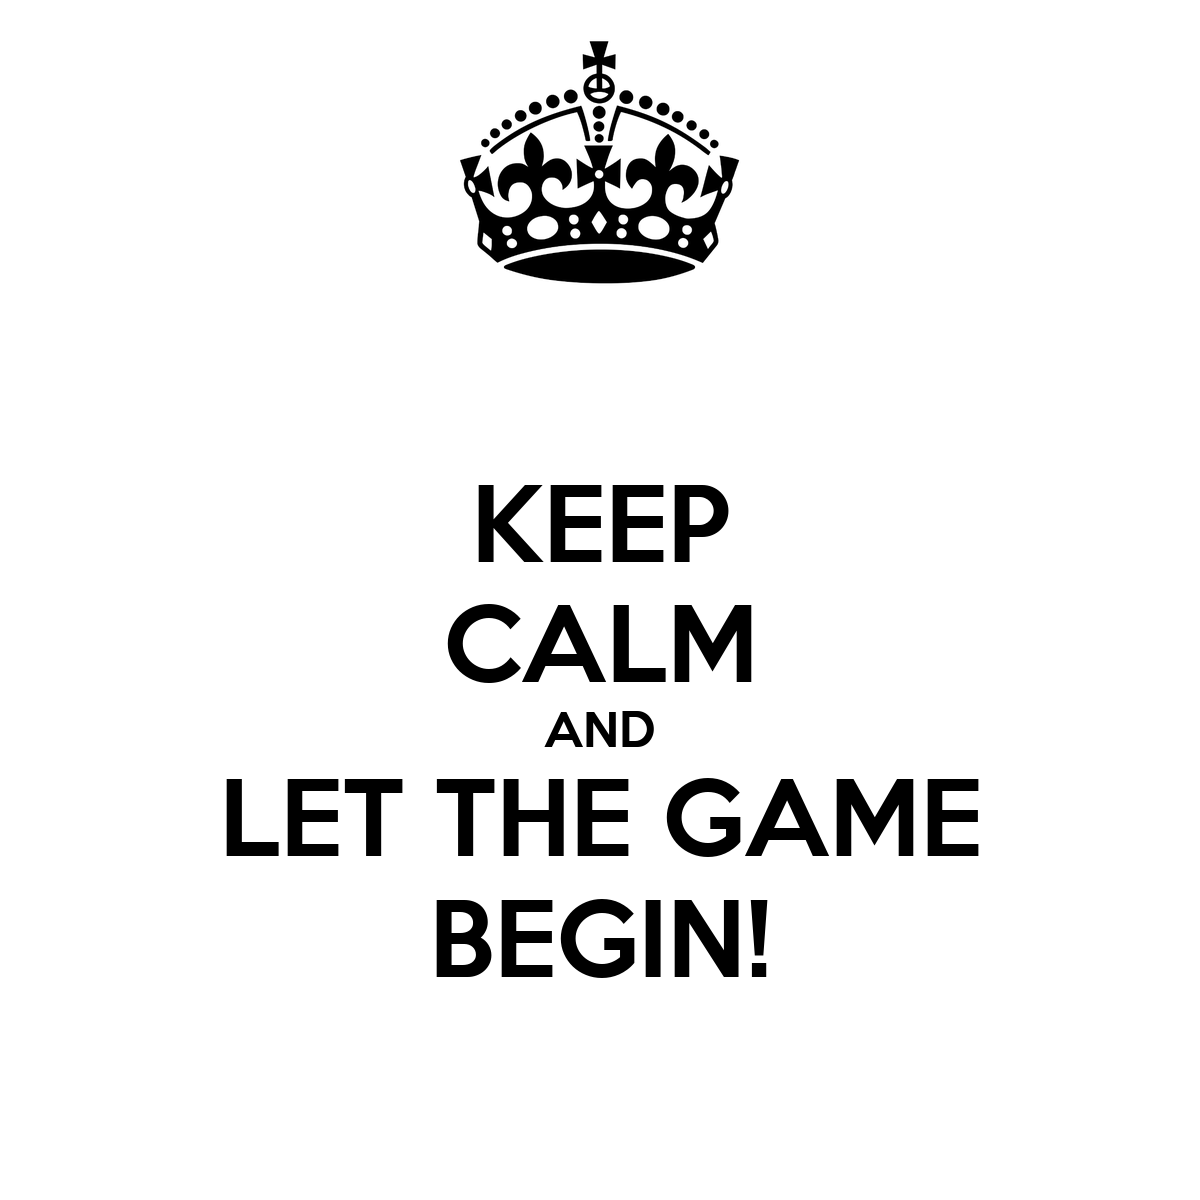 keep calm and let the game begin  poster